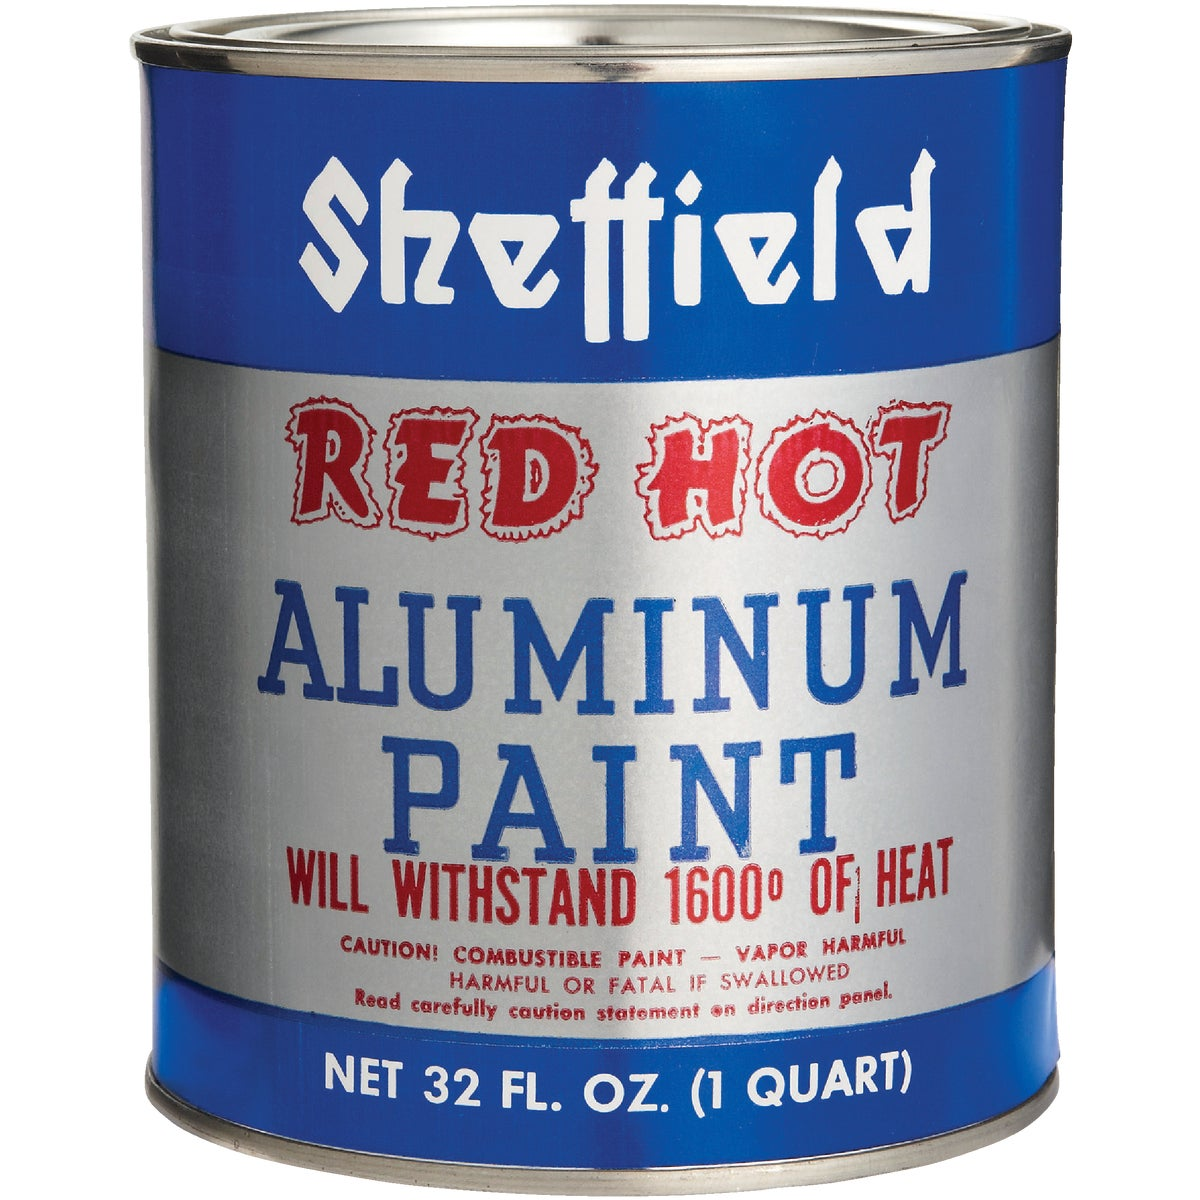 RED HOT ALUMINUM PAINT - 5319 by Sheffield Bronze Pnt